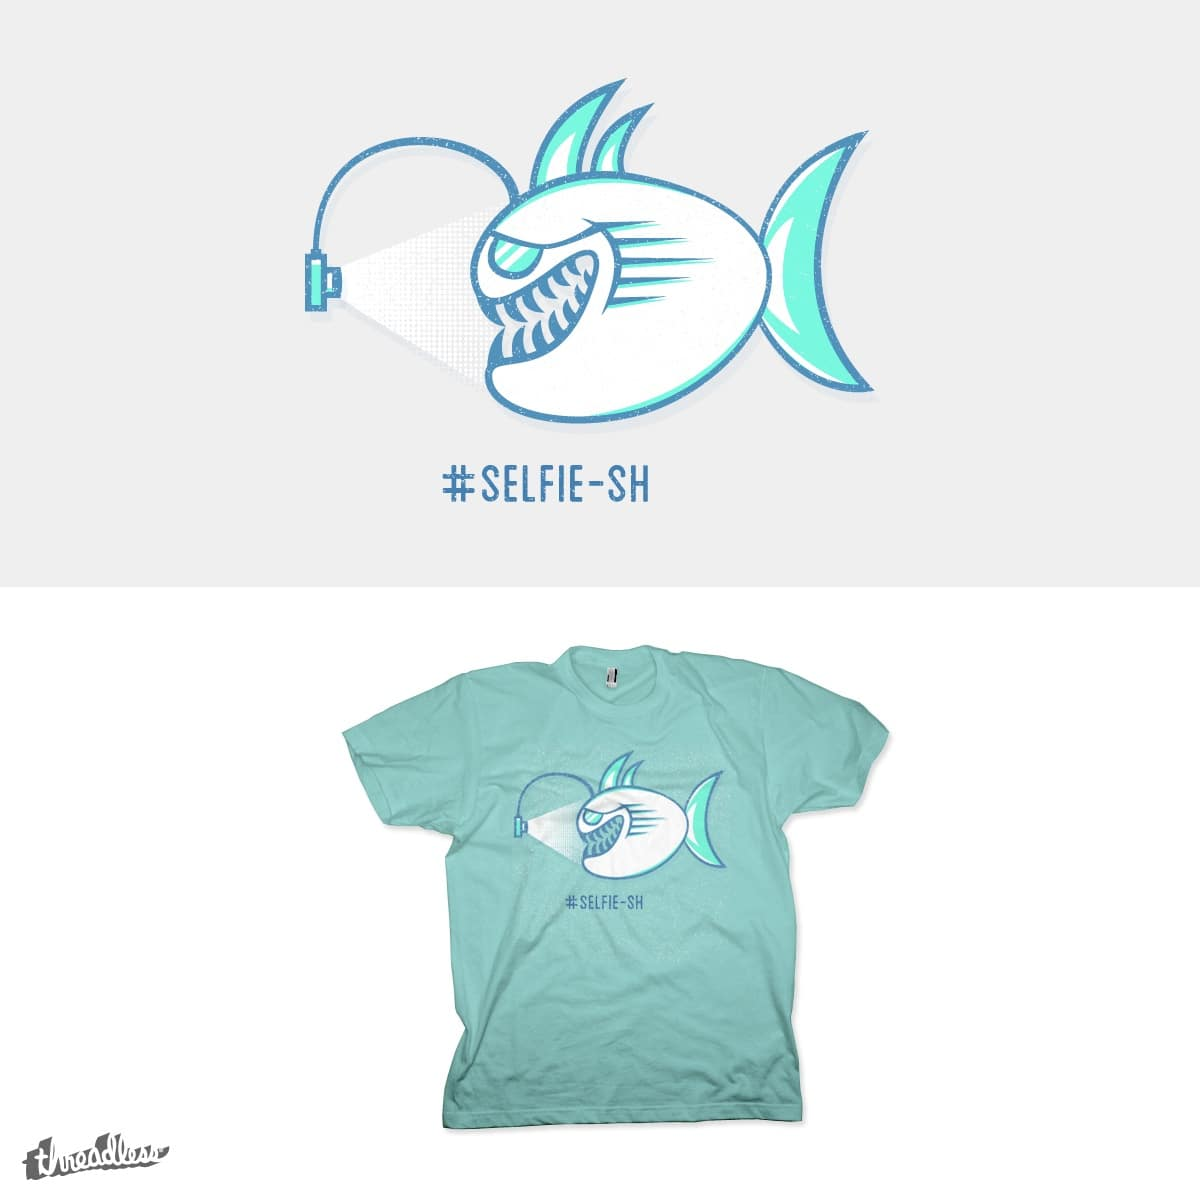 SELFIE-SH by addu on Threadless